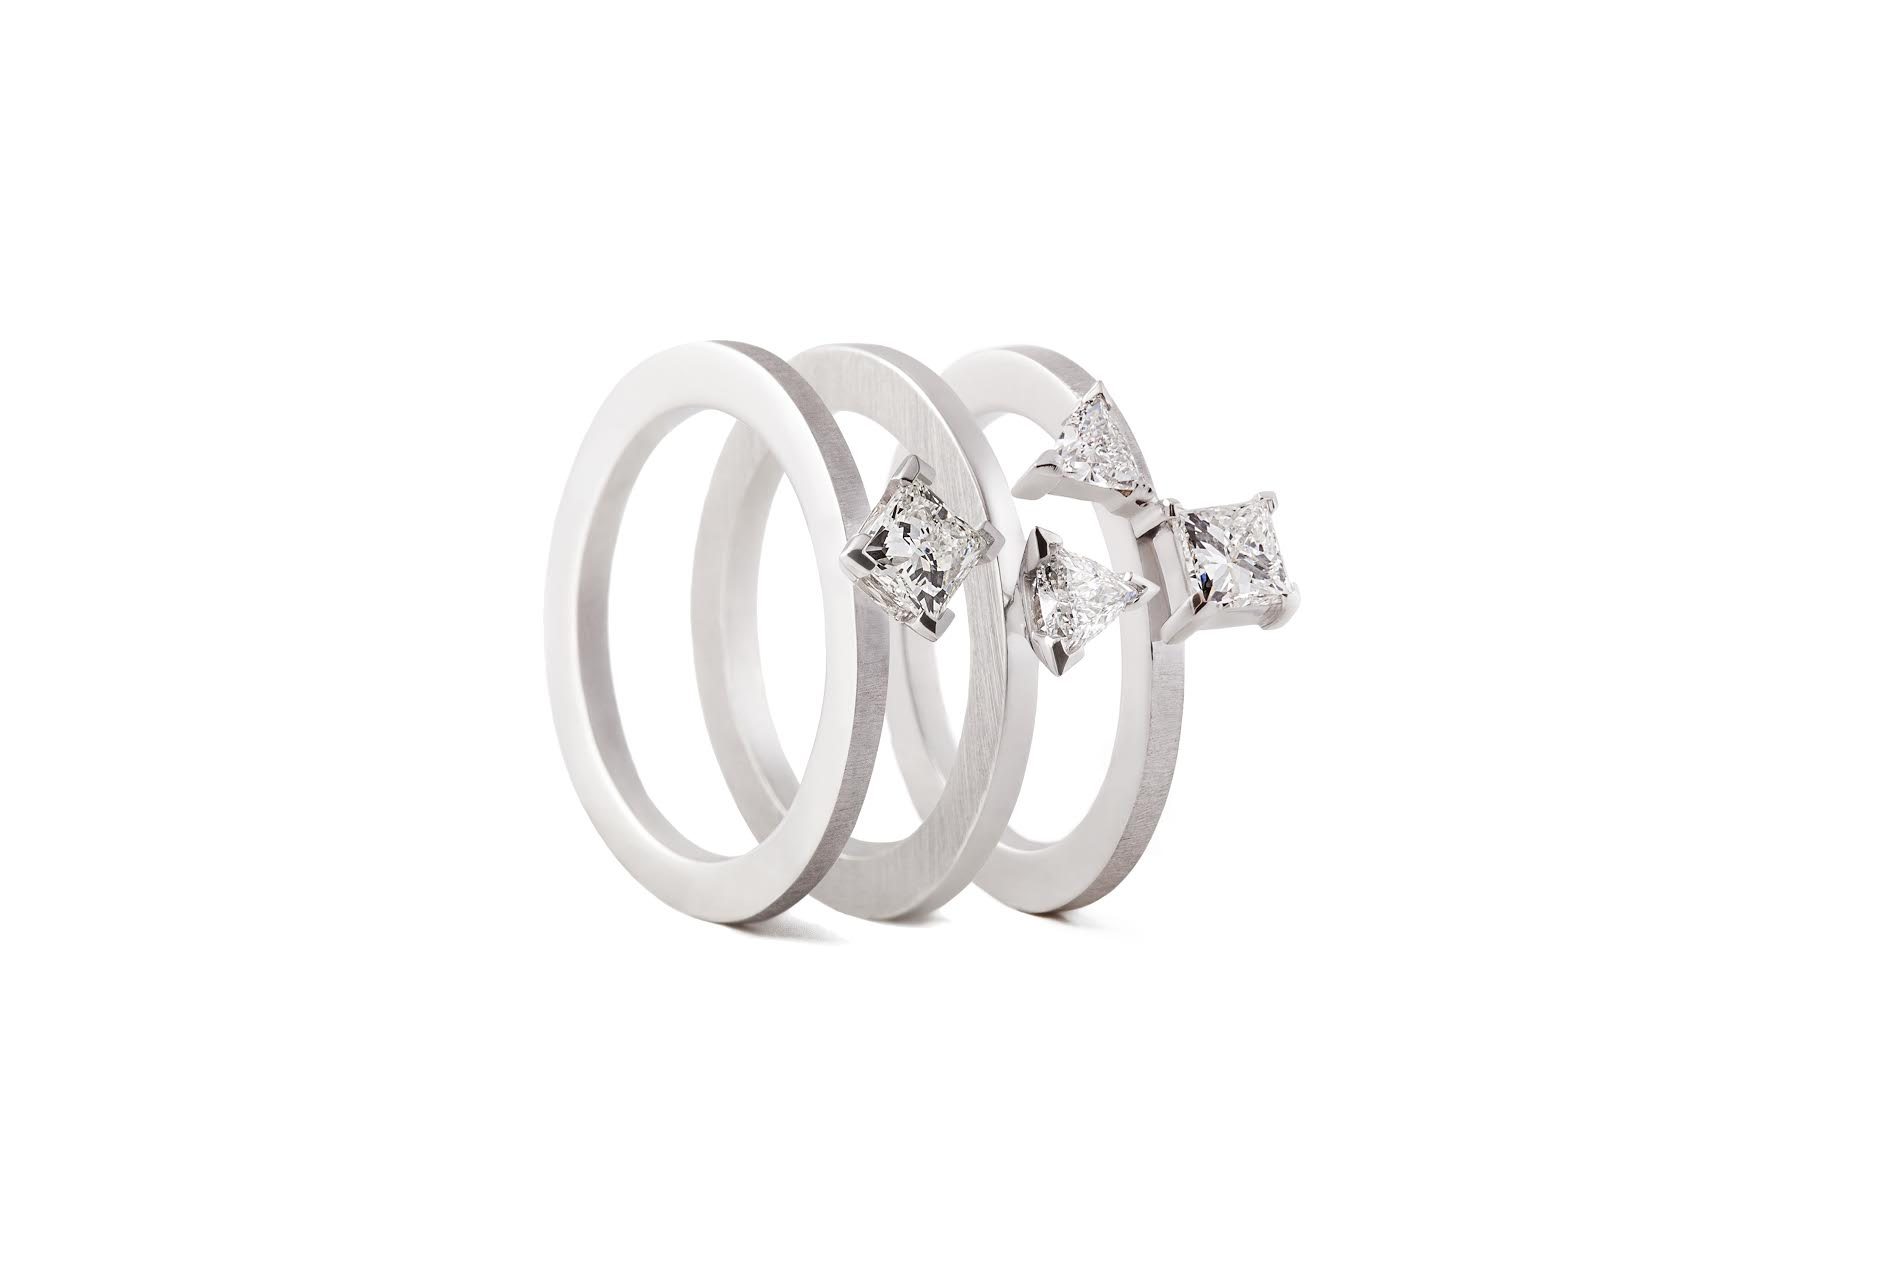 CREST-MA-CREST-M-CREST-A-RINGS